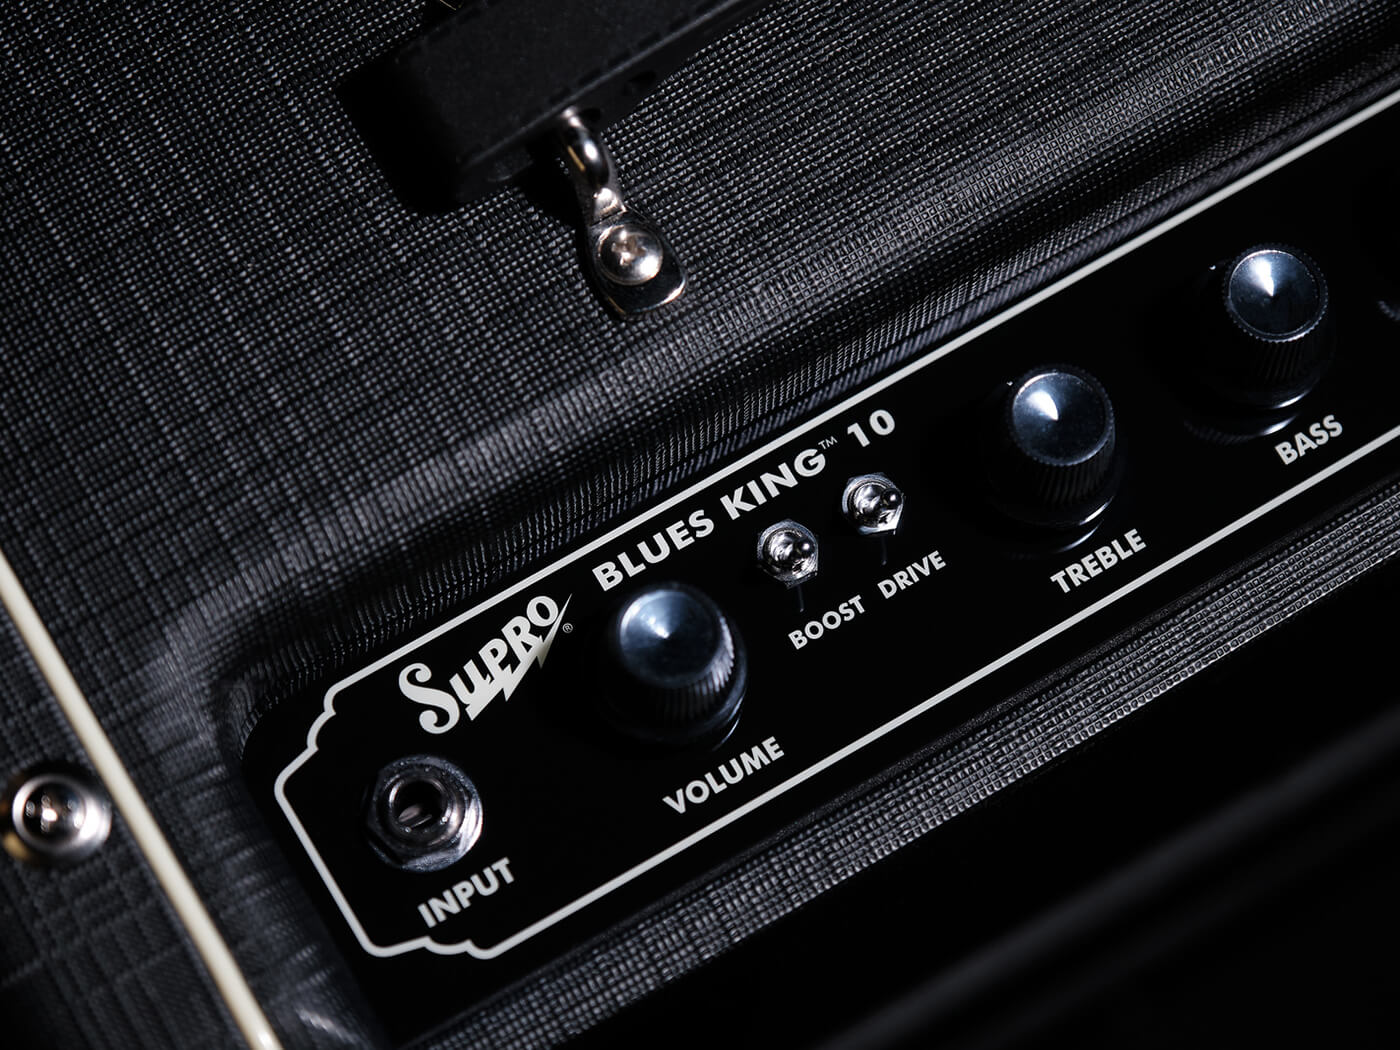 Supro Blues King 10 (Knobs)